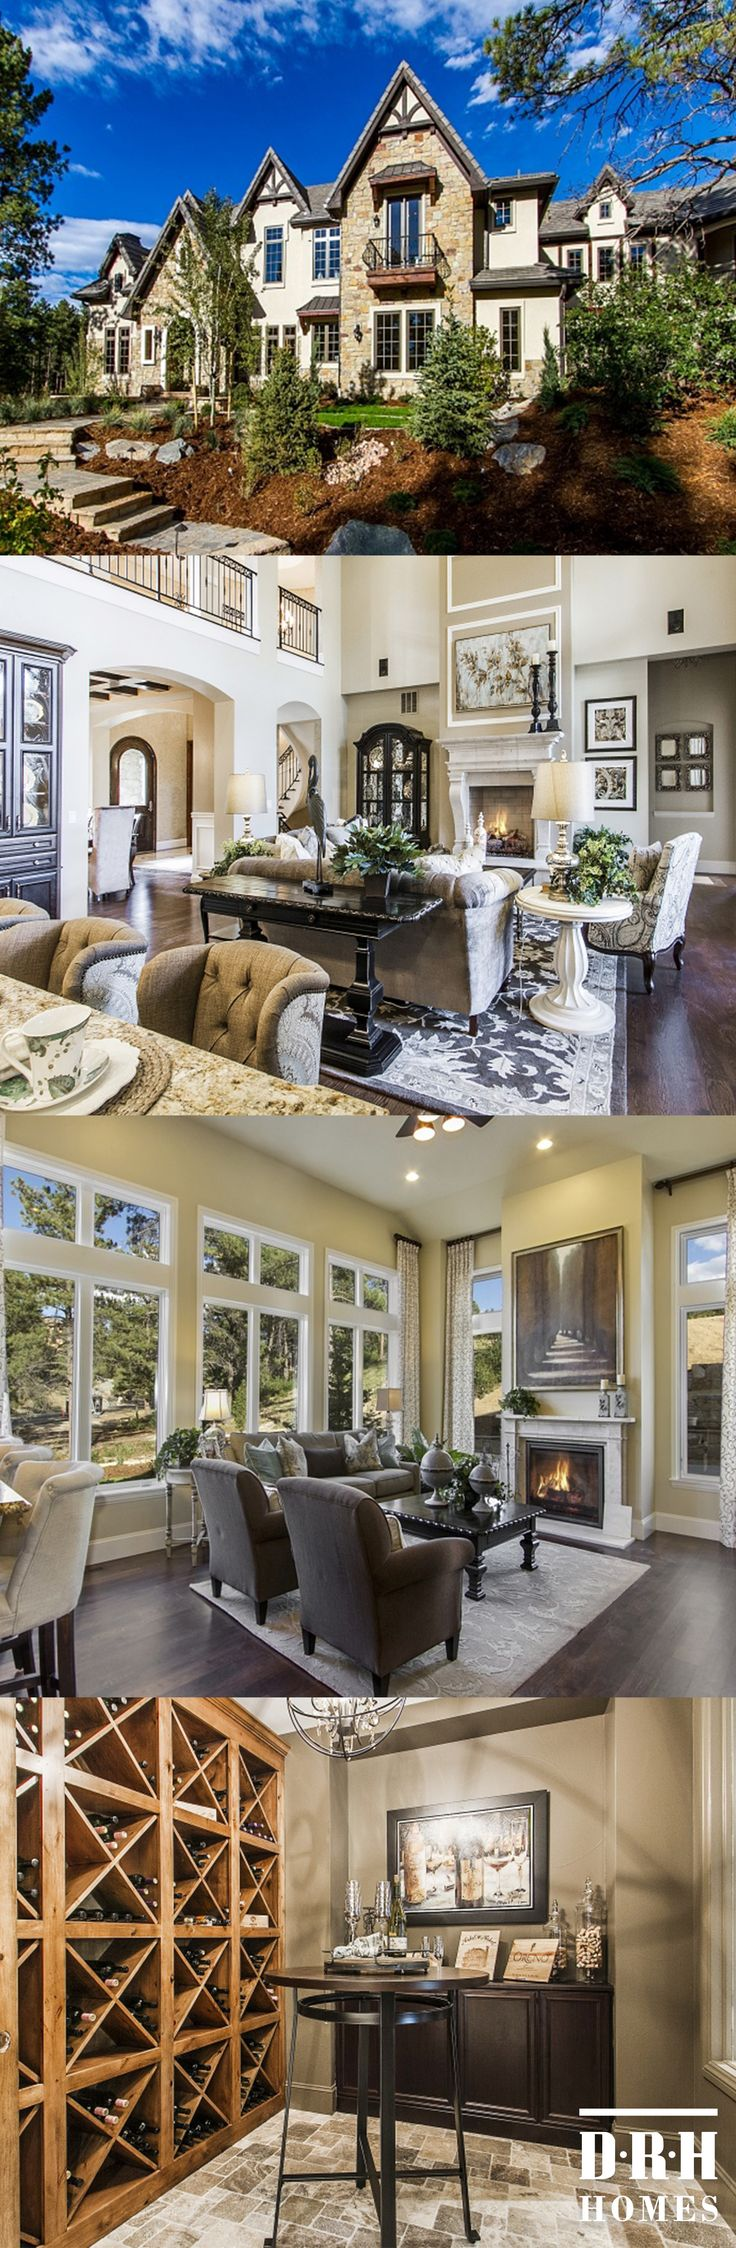 Pinon Soleil offers home buyers beautifully appointed